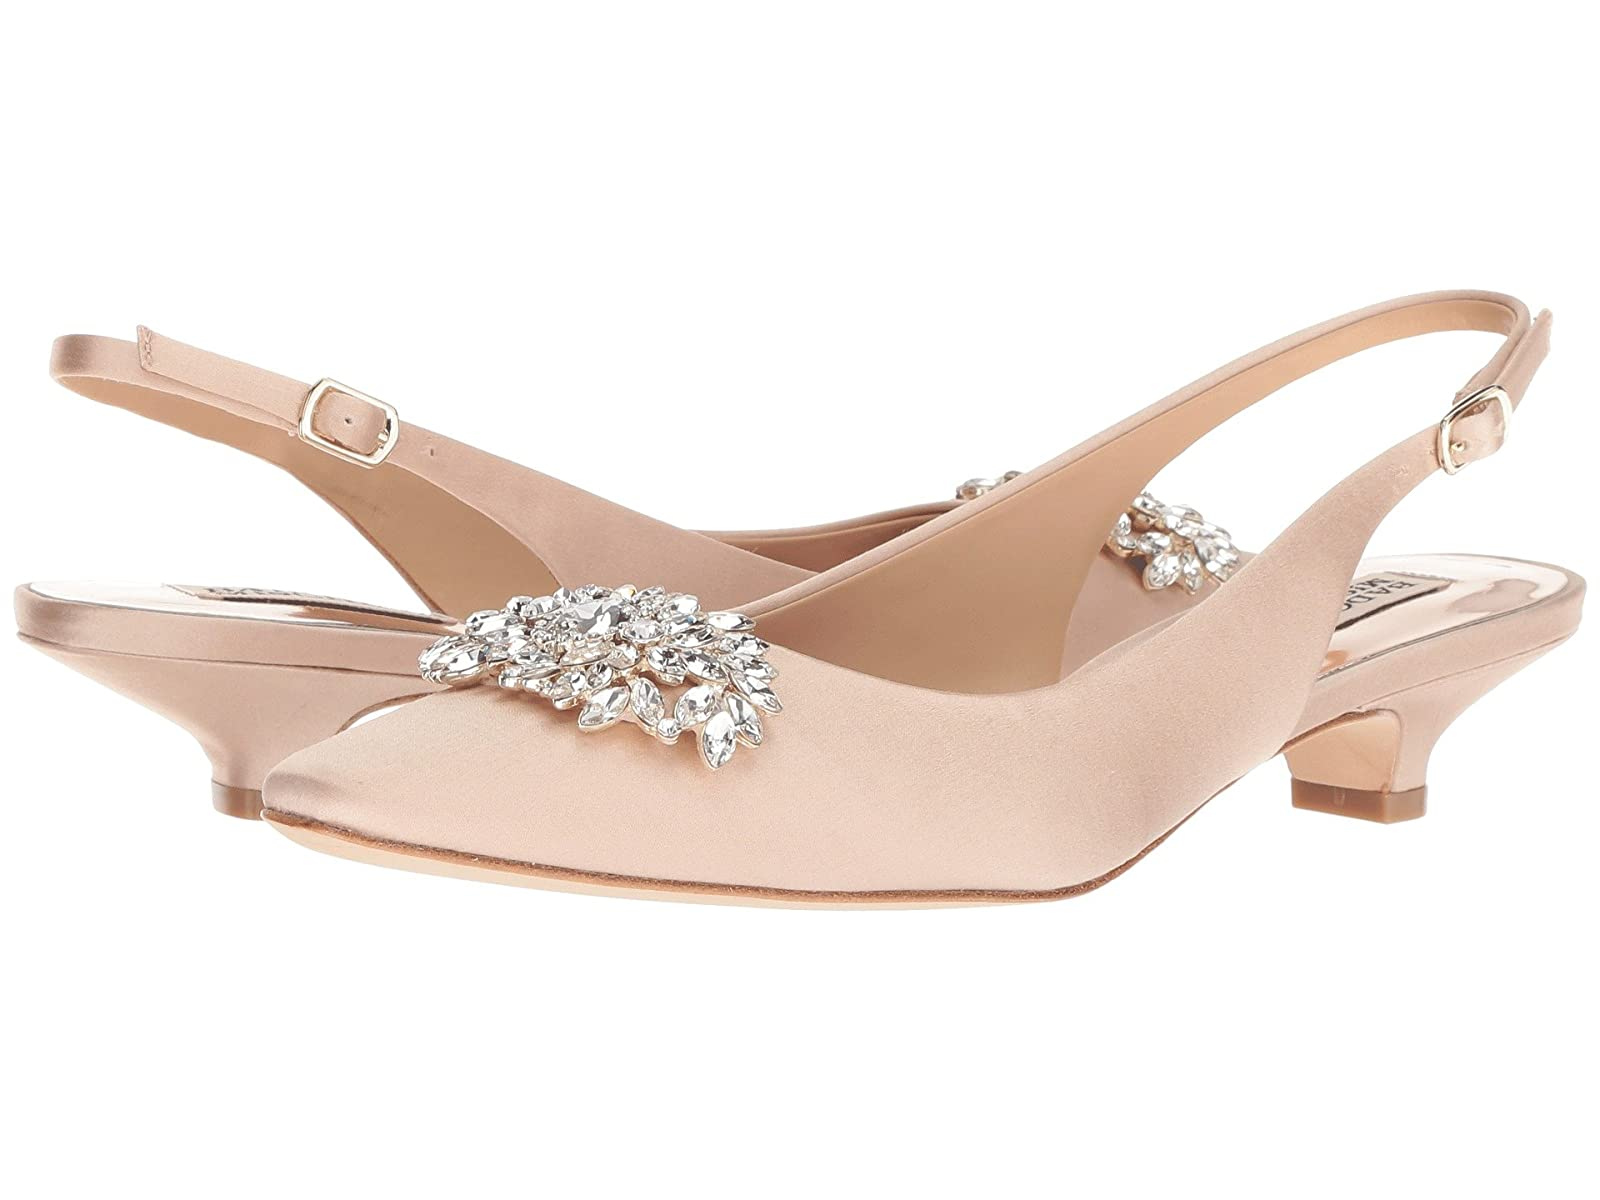 Badgley Mischka PageAtmospheric grades have affordable shoes